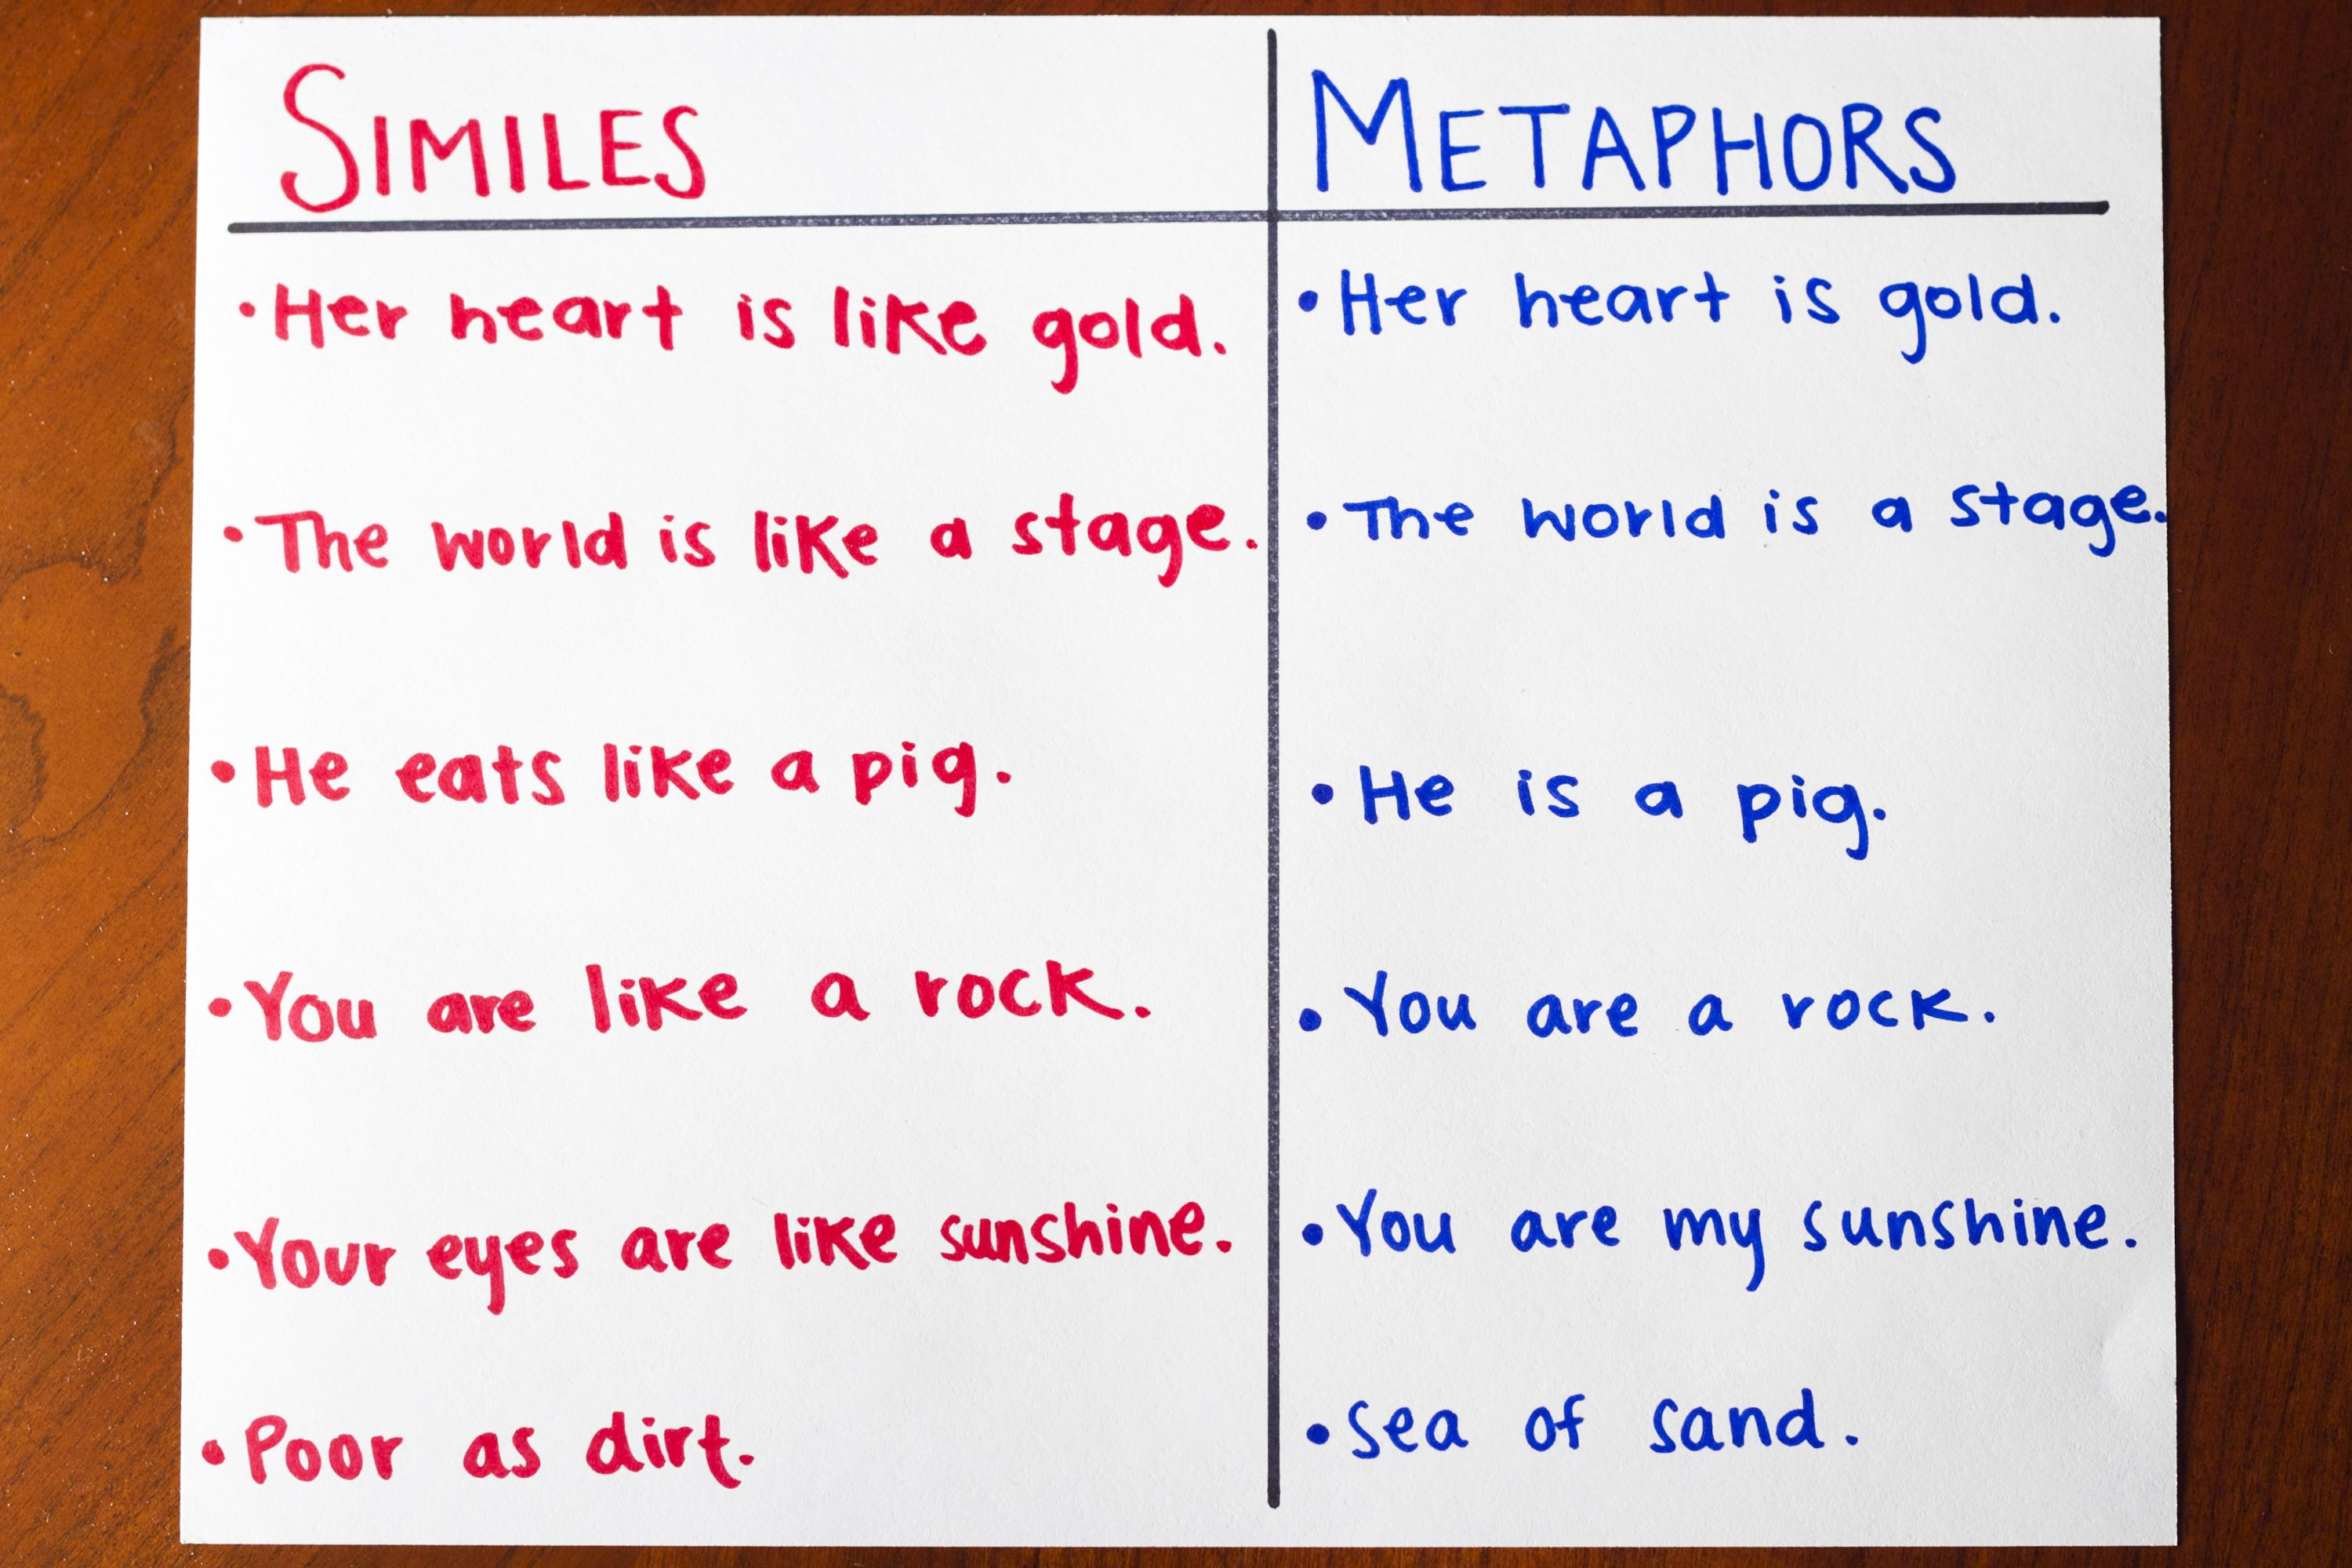 Fun Simile Metaphor Activities With Images Similes And